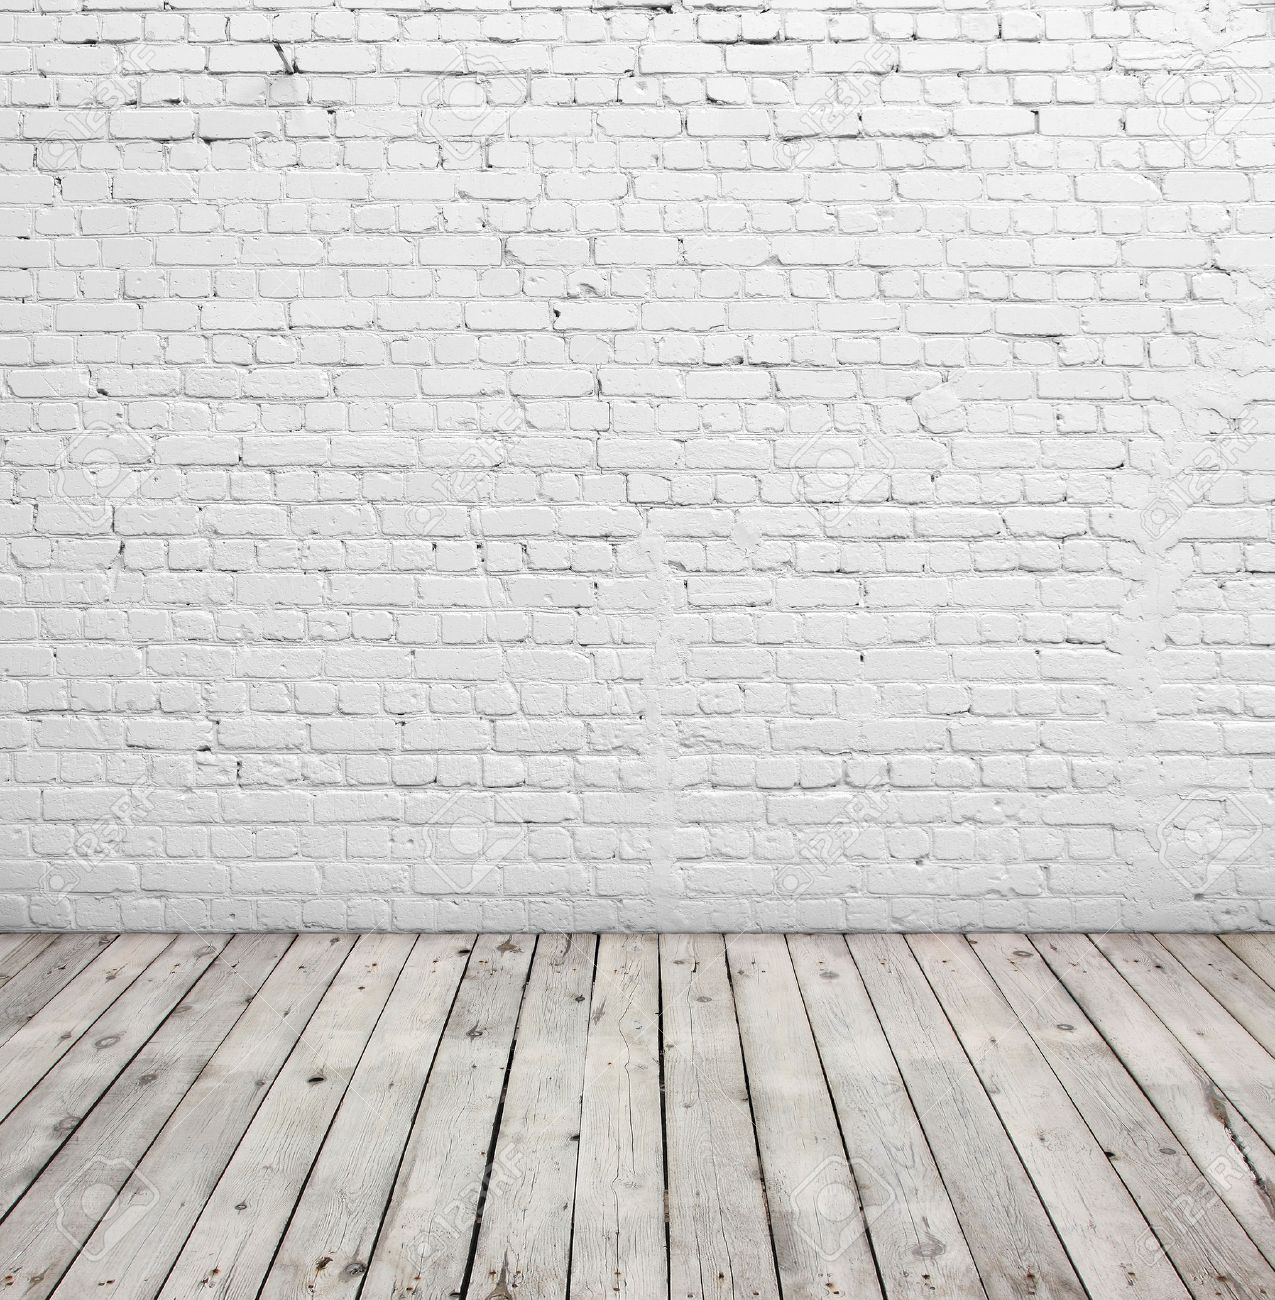 Afbeeldingsresultaat Voor Brick Wall Brick Wall Backdrop Wall Backdrops White Brick Walls